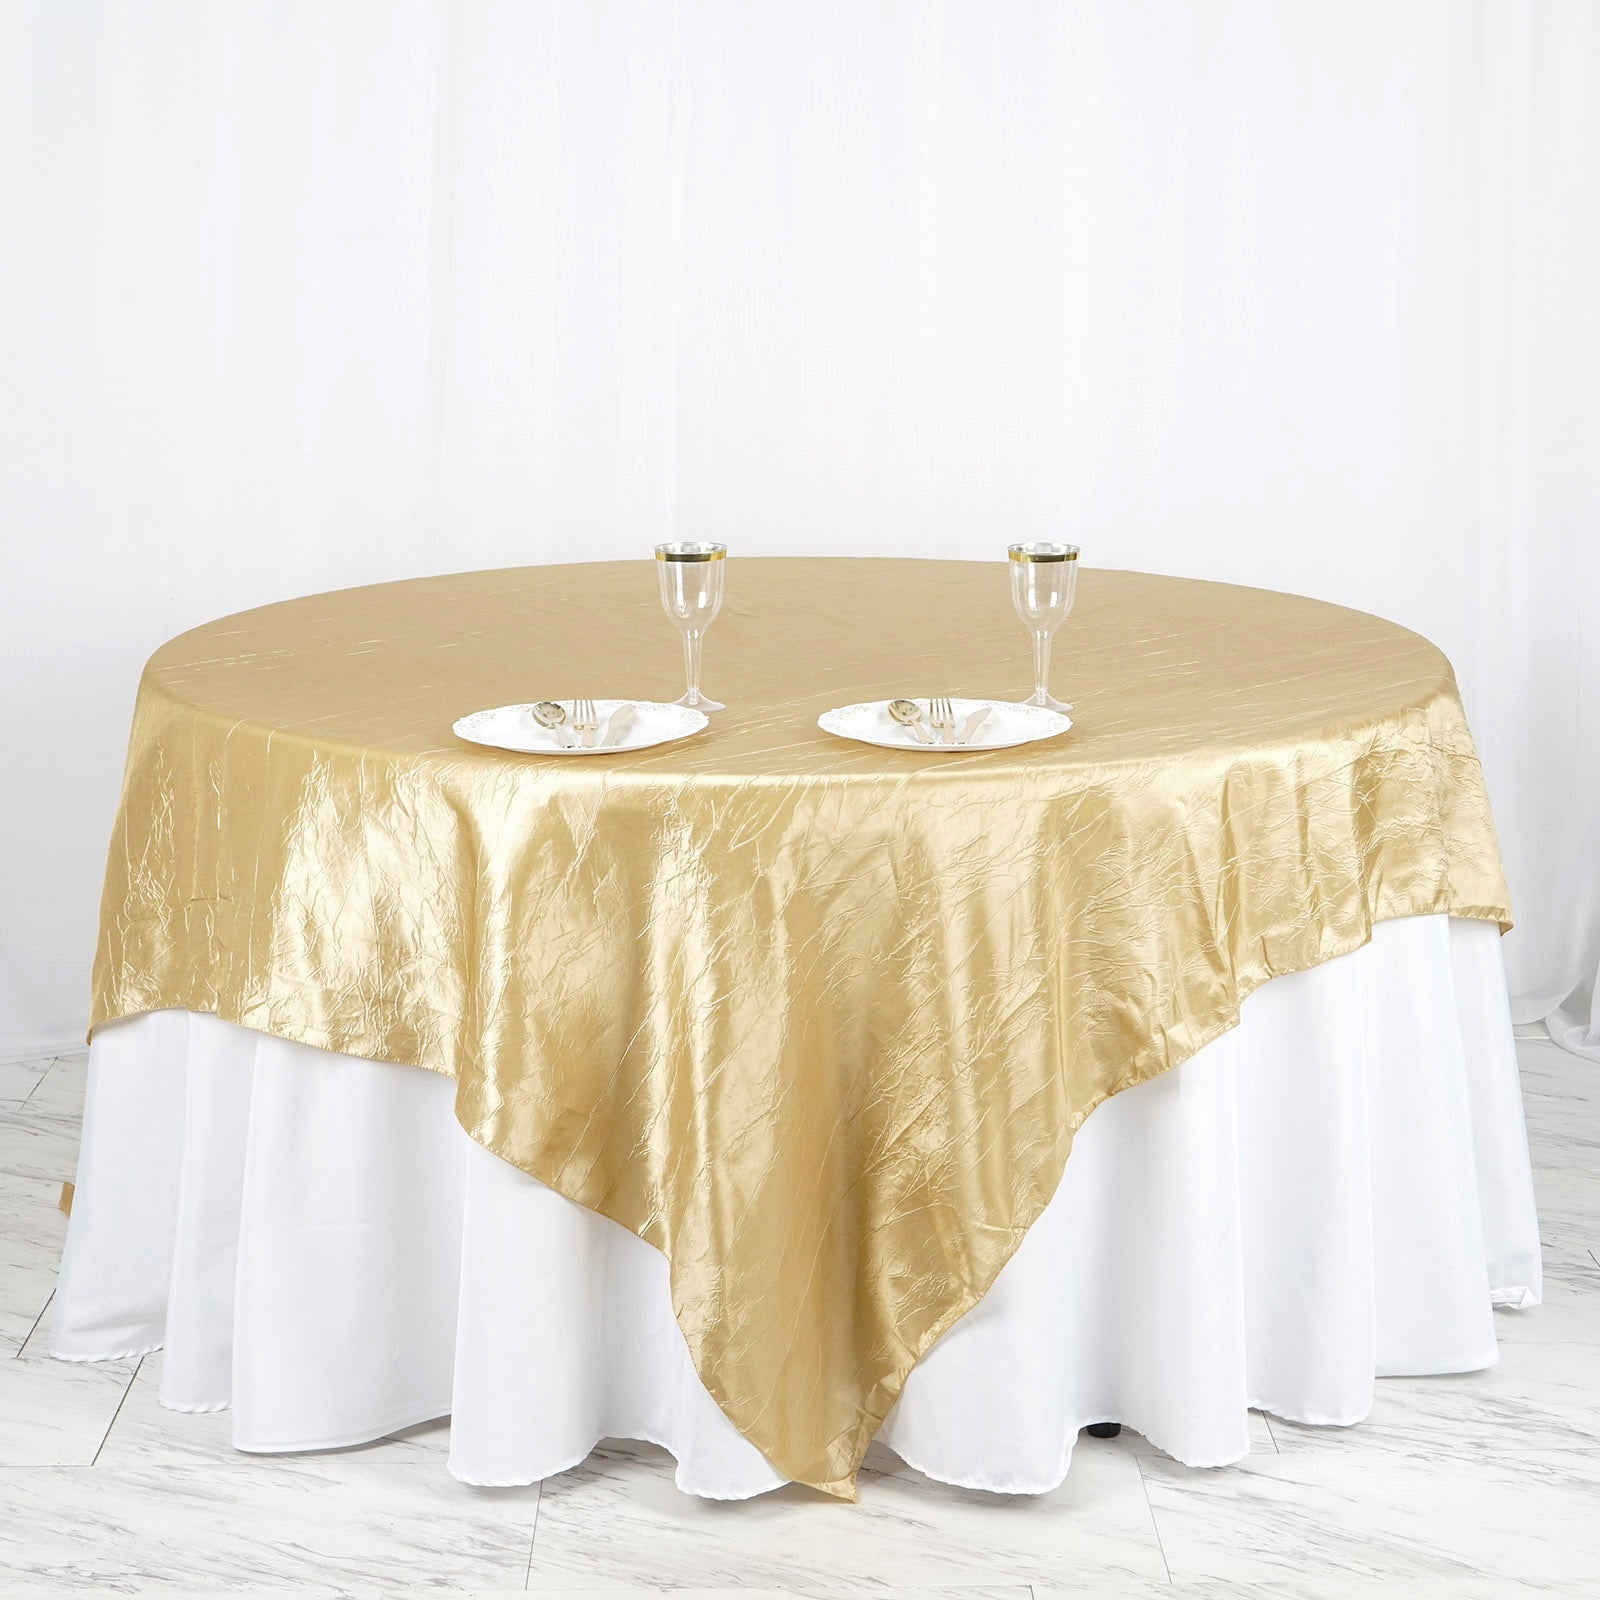 Efavormart Apple Green Taffeta Crinkle Square Tablecloth Overlay 90x90 Square Tablecloth Cover for Wedding Party Event Banquet